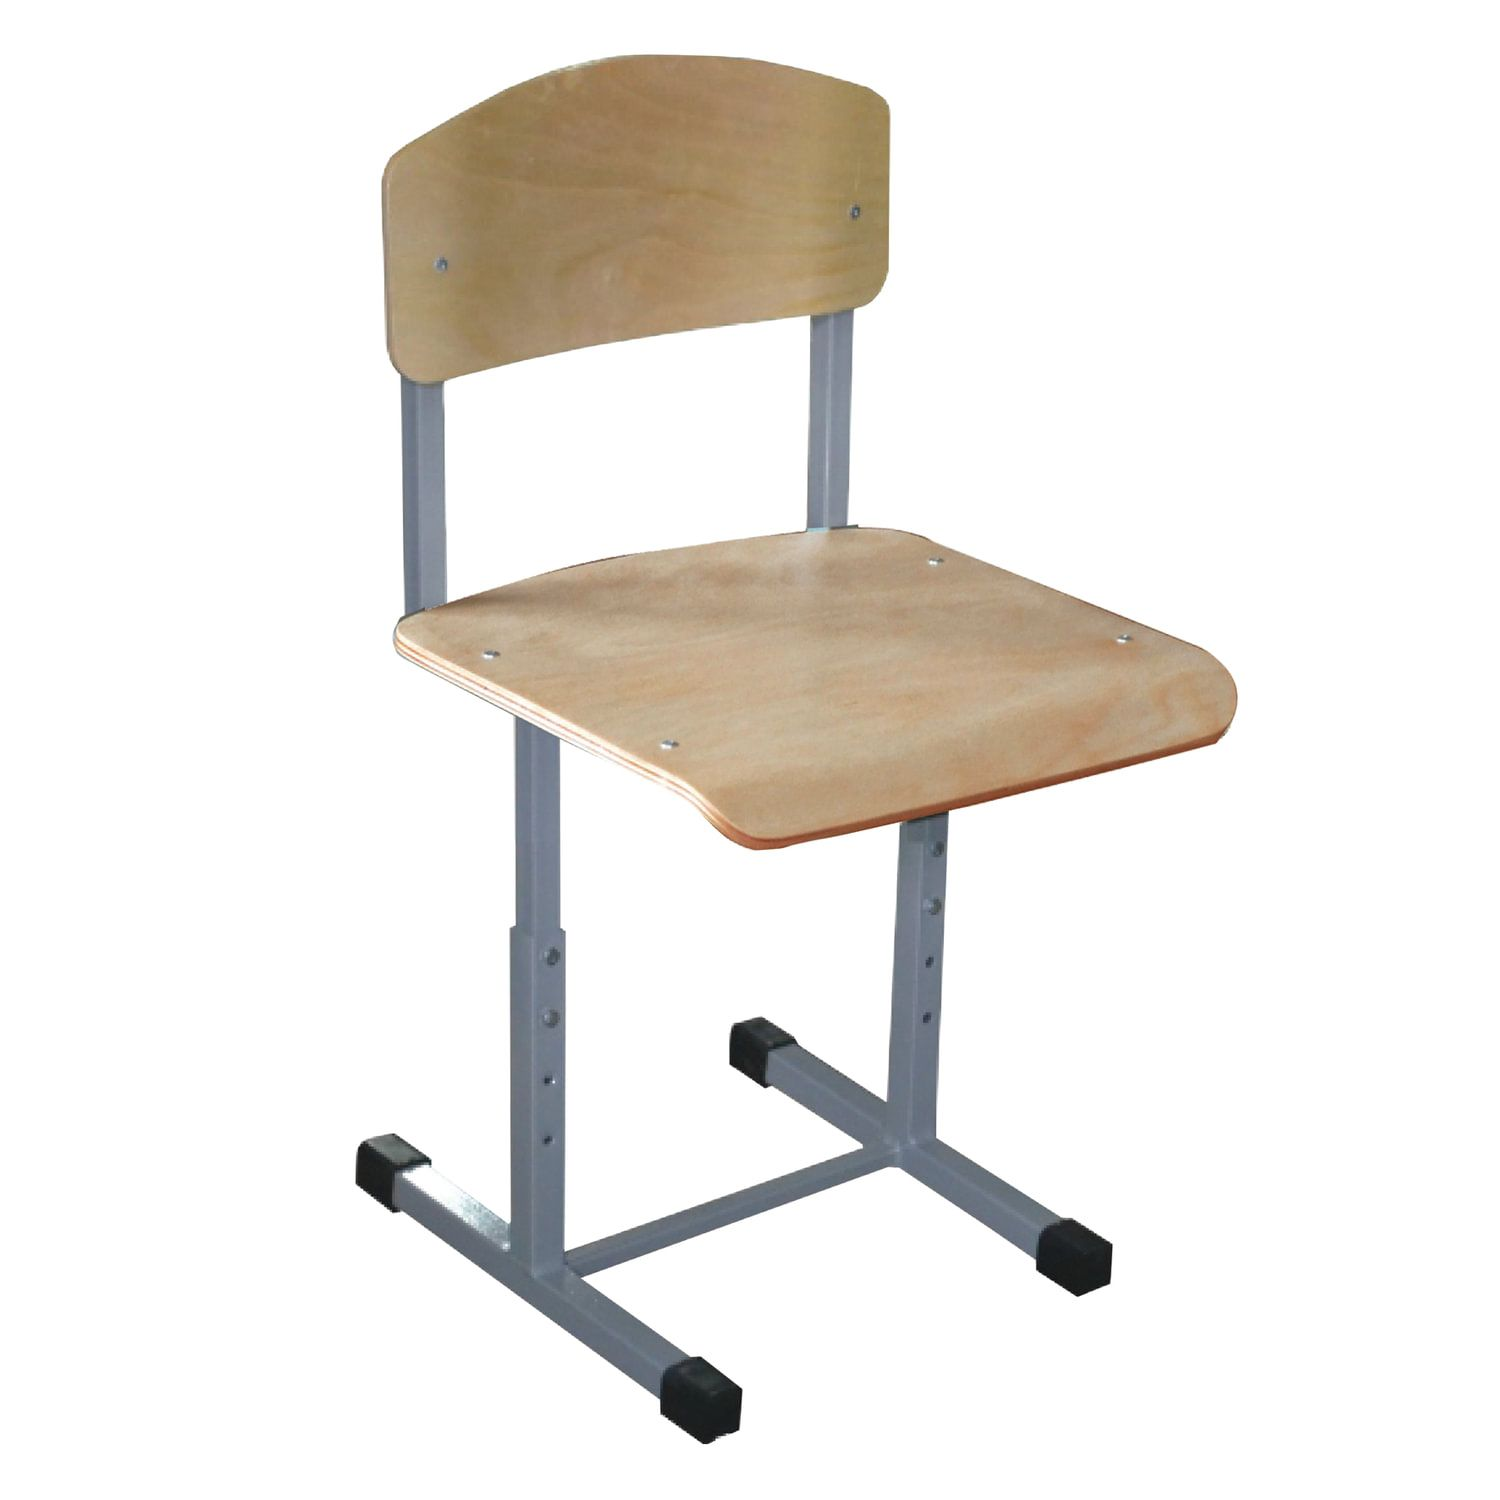 Budget chair, 585-665 x340 x430 mm, height 2-4, grey frame